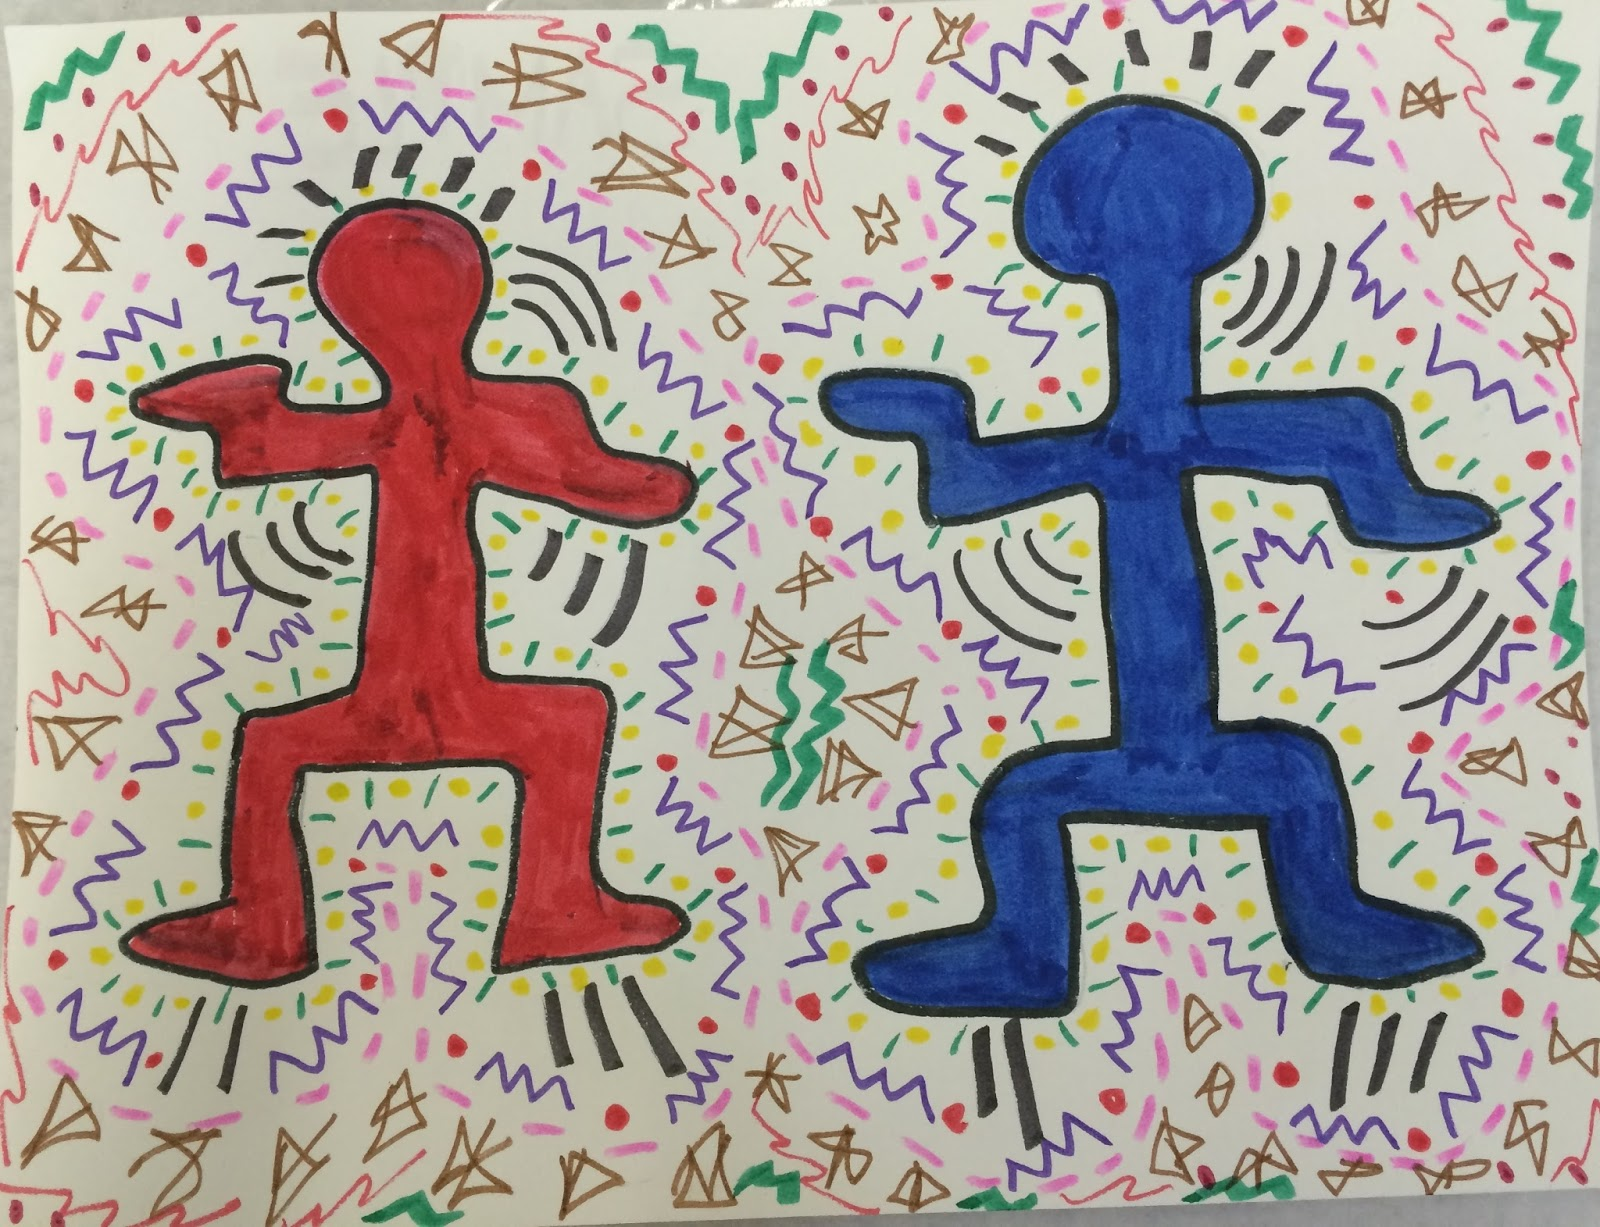 Ms C S Artroom Keith Haring Characters